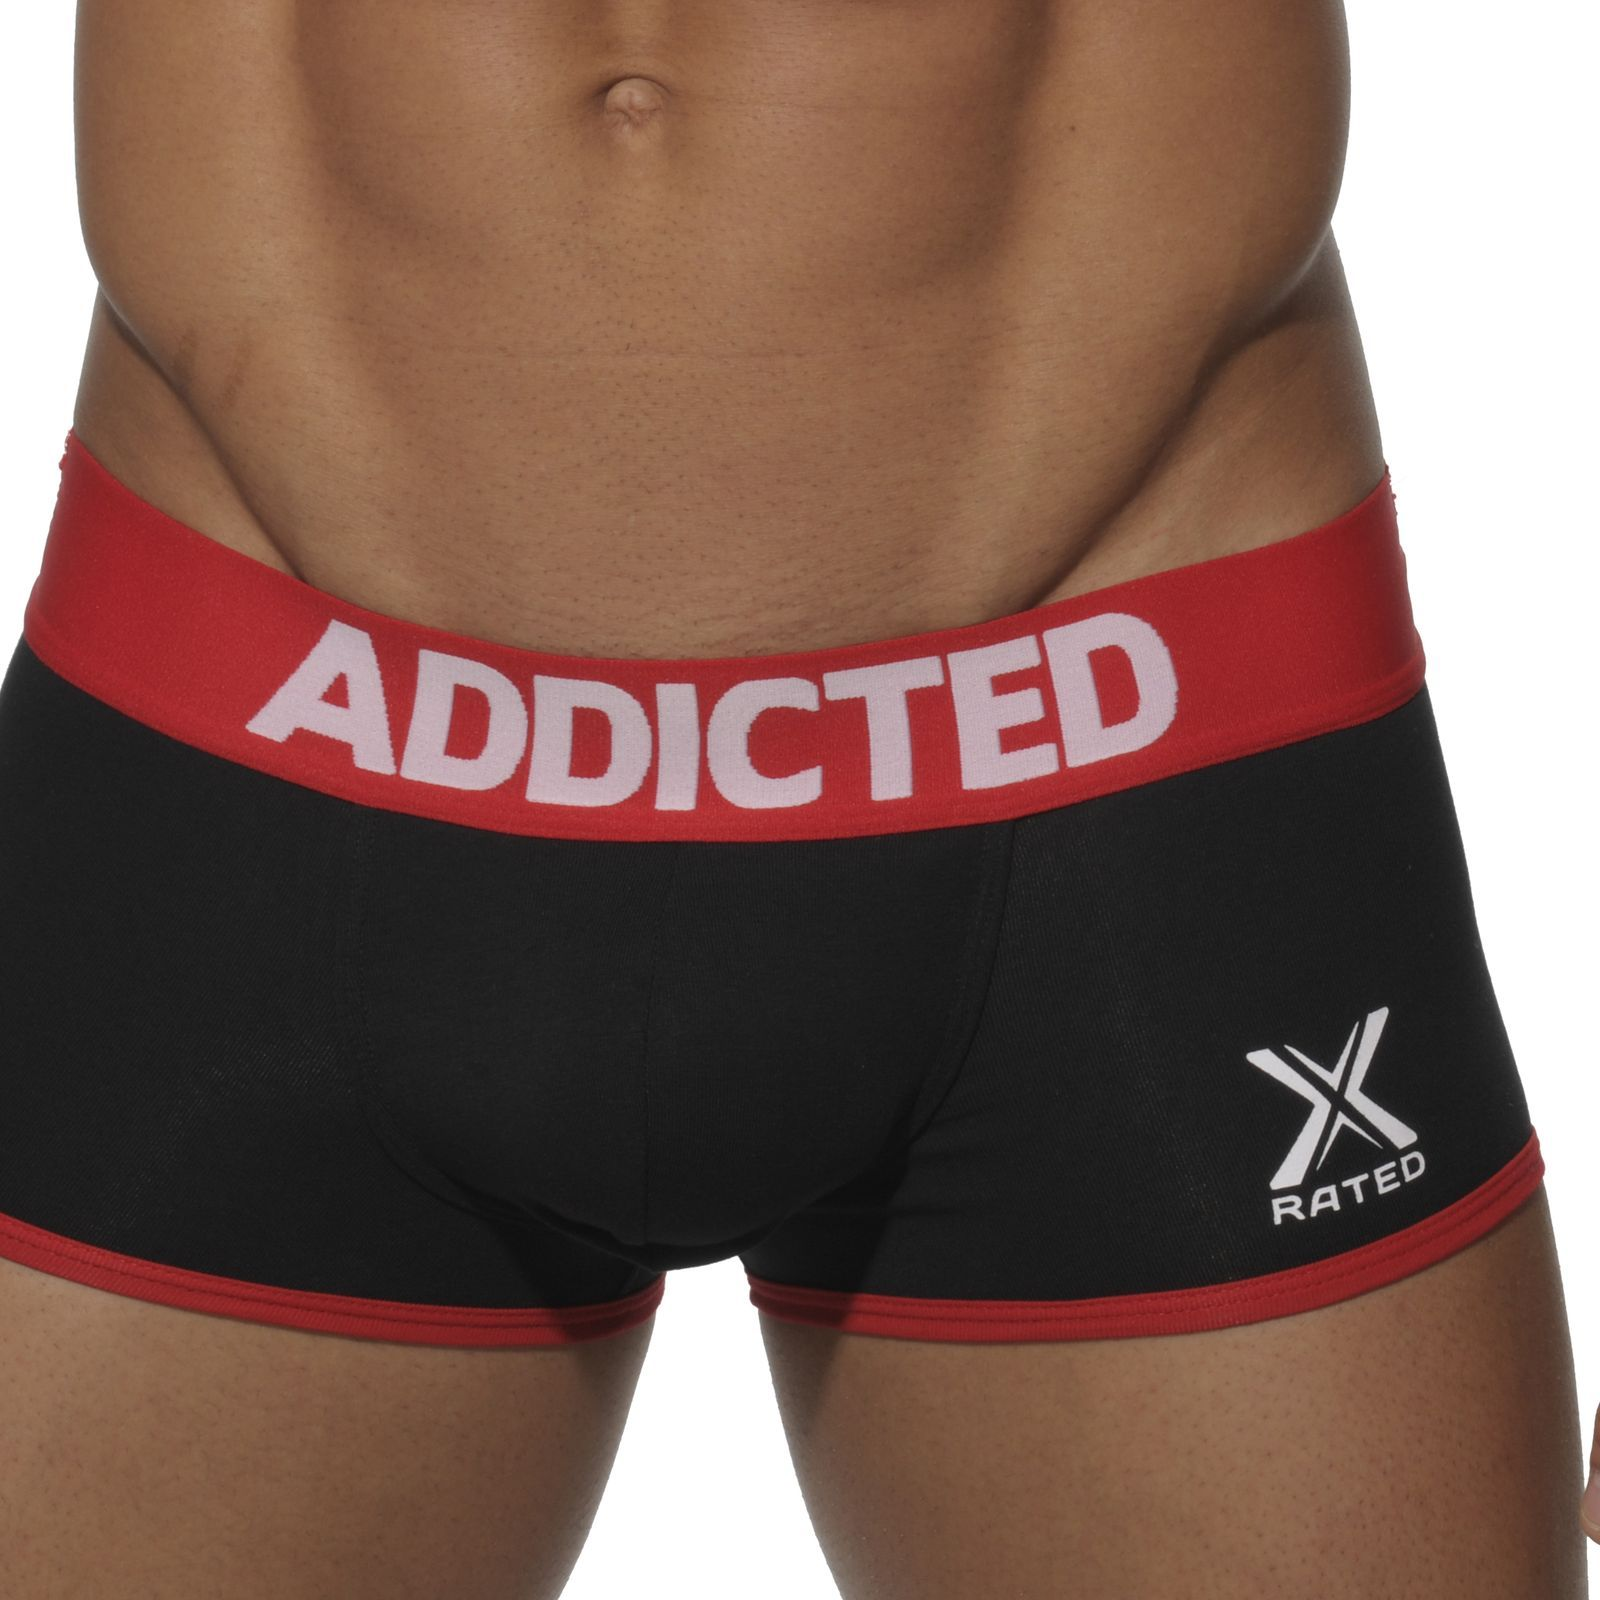 Boxer Addicted AD194